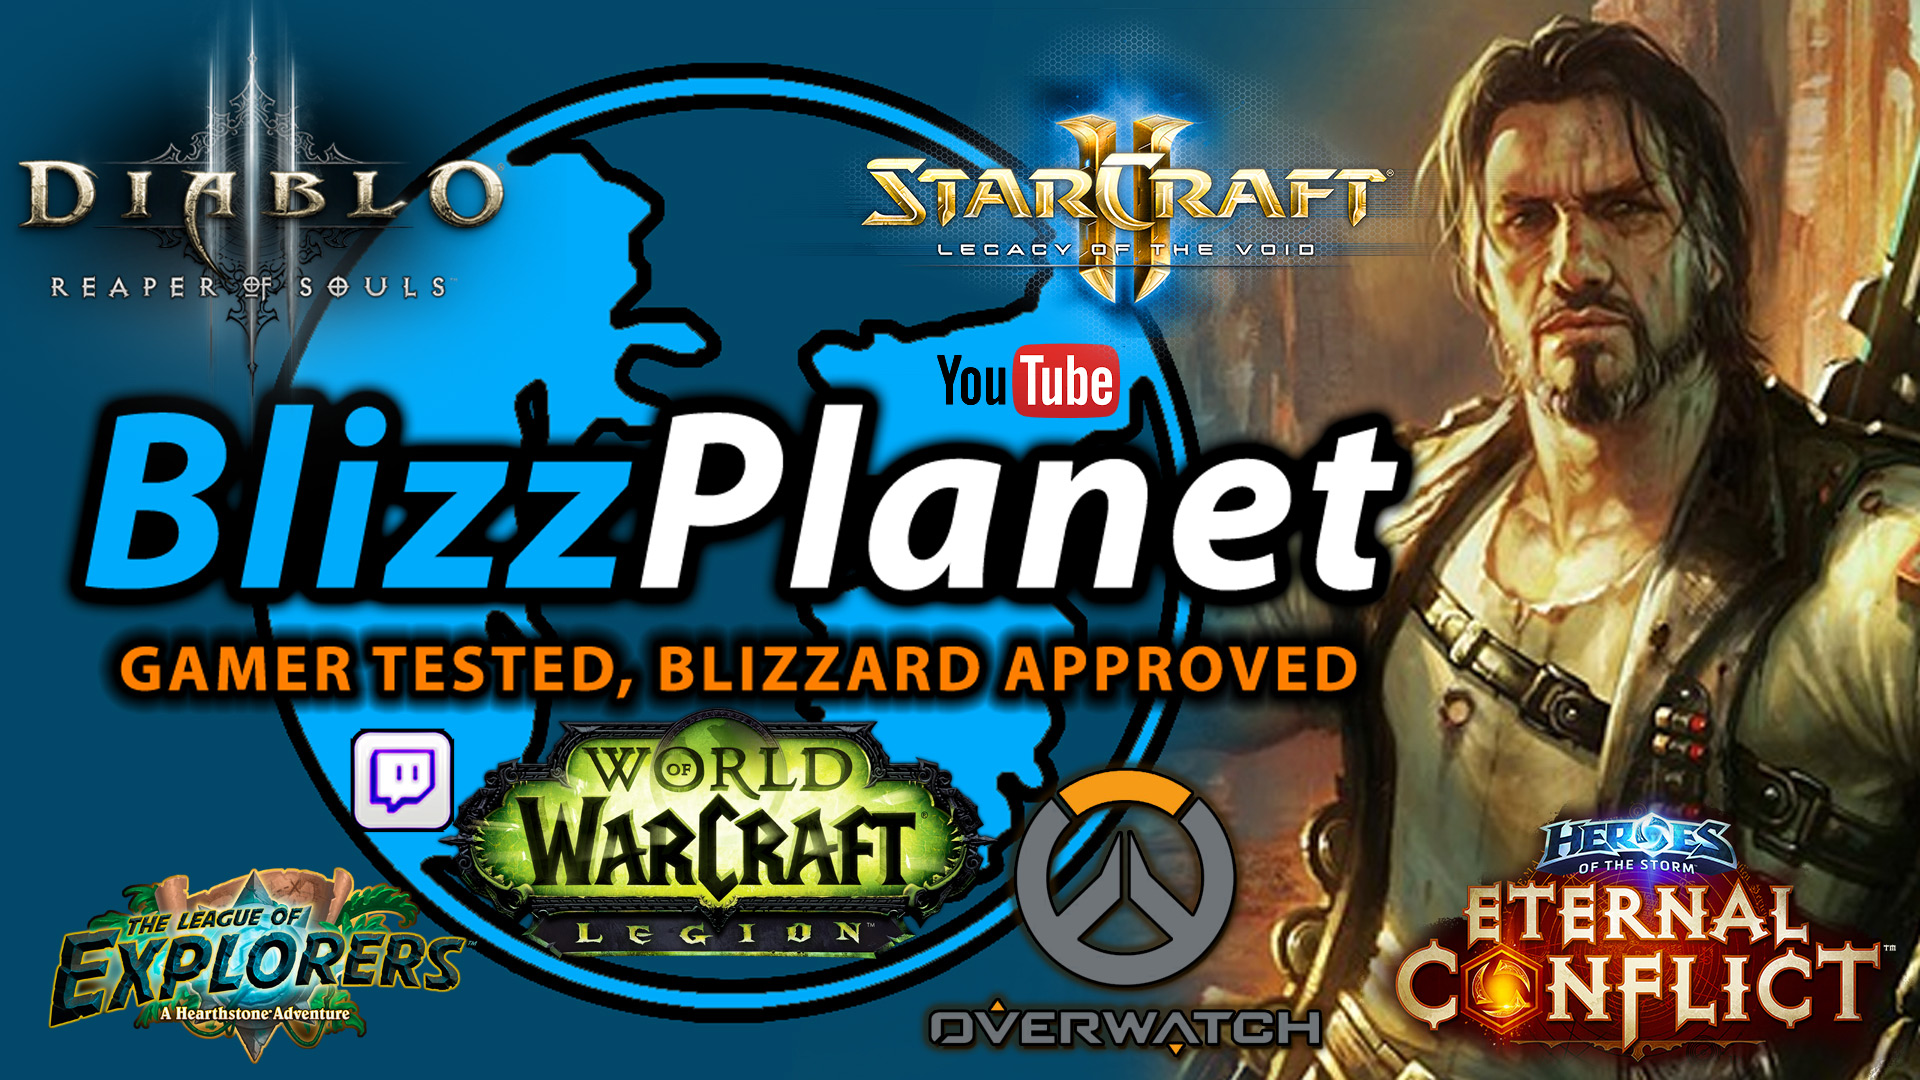 bp-logo-SC2-1920x1080-ALL-GAMES